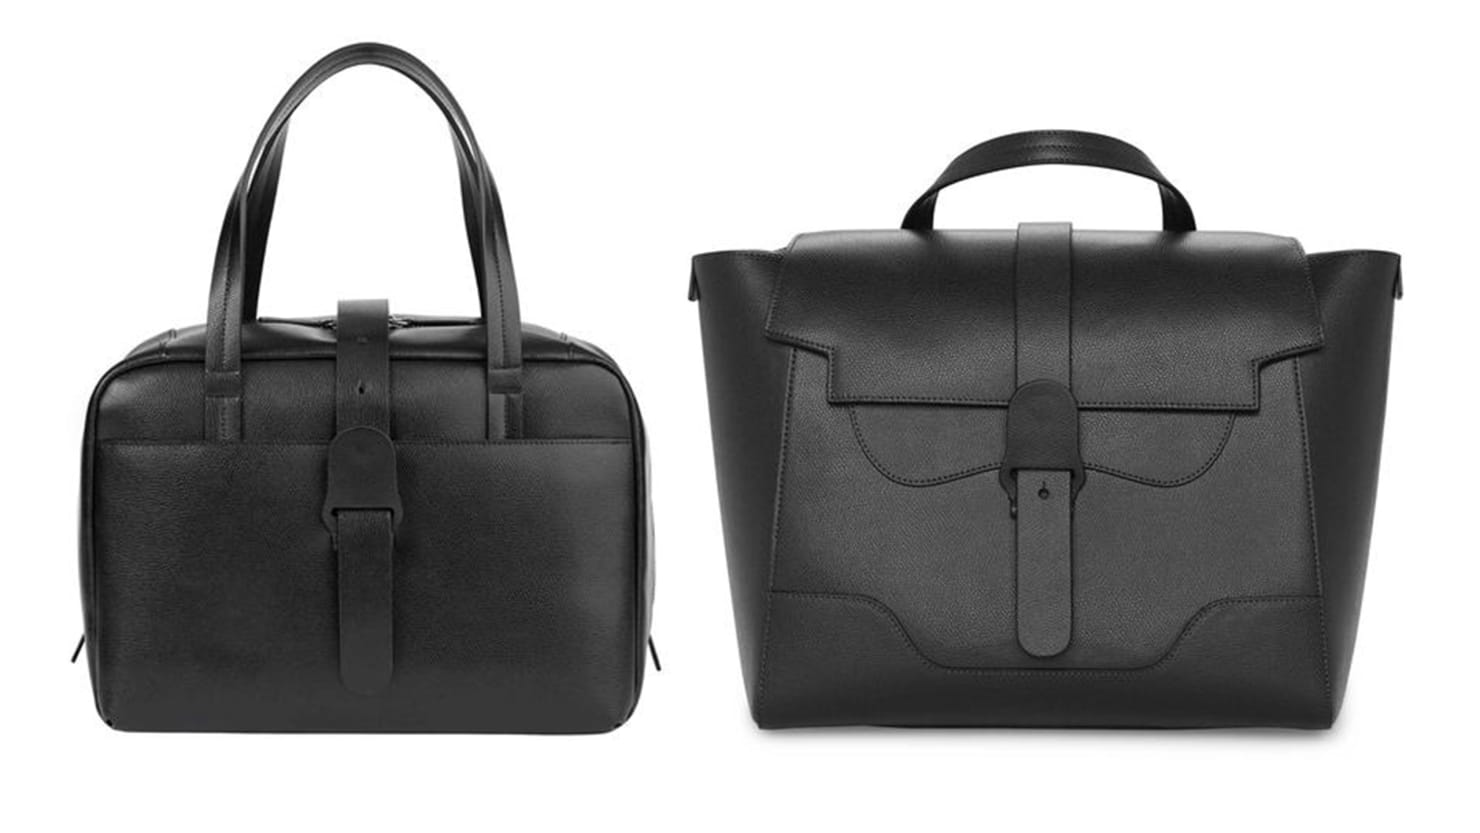 Senreve's Luxury Bags Add Sustainability to Their Long List of Features